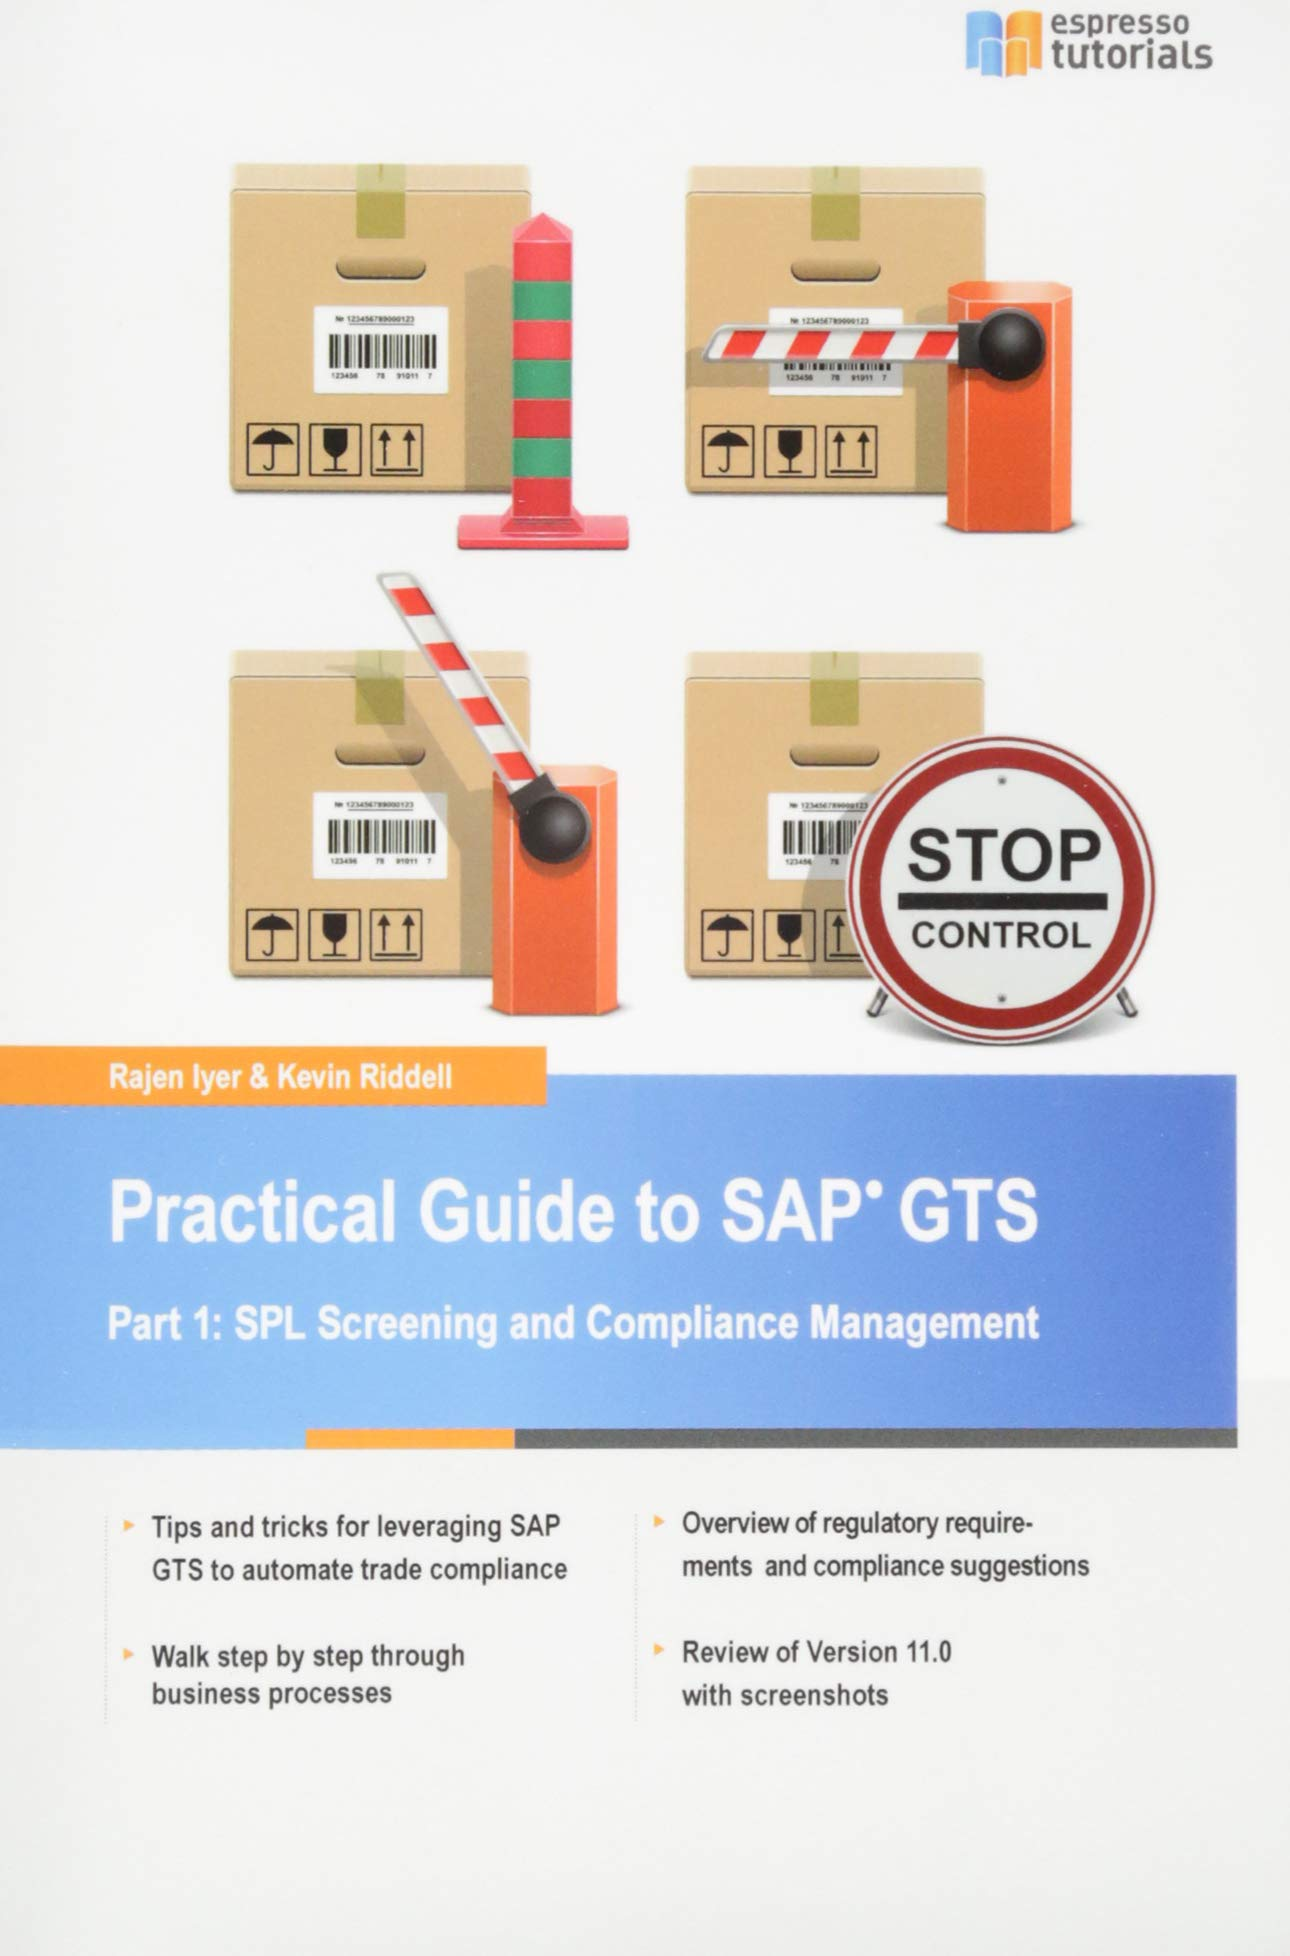 Amazon.com: Practical Guide to SAP GTS (9781508613442): Kevin Riddell,  Rajen Iyer: Books